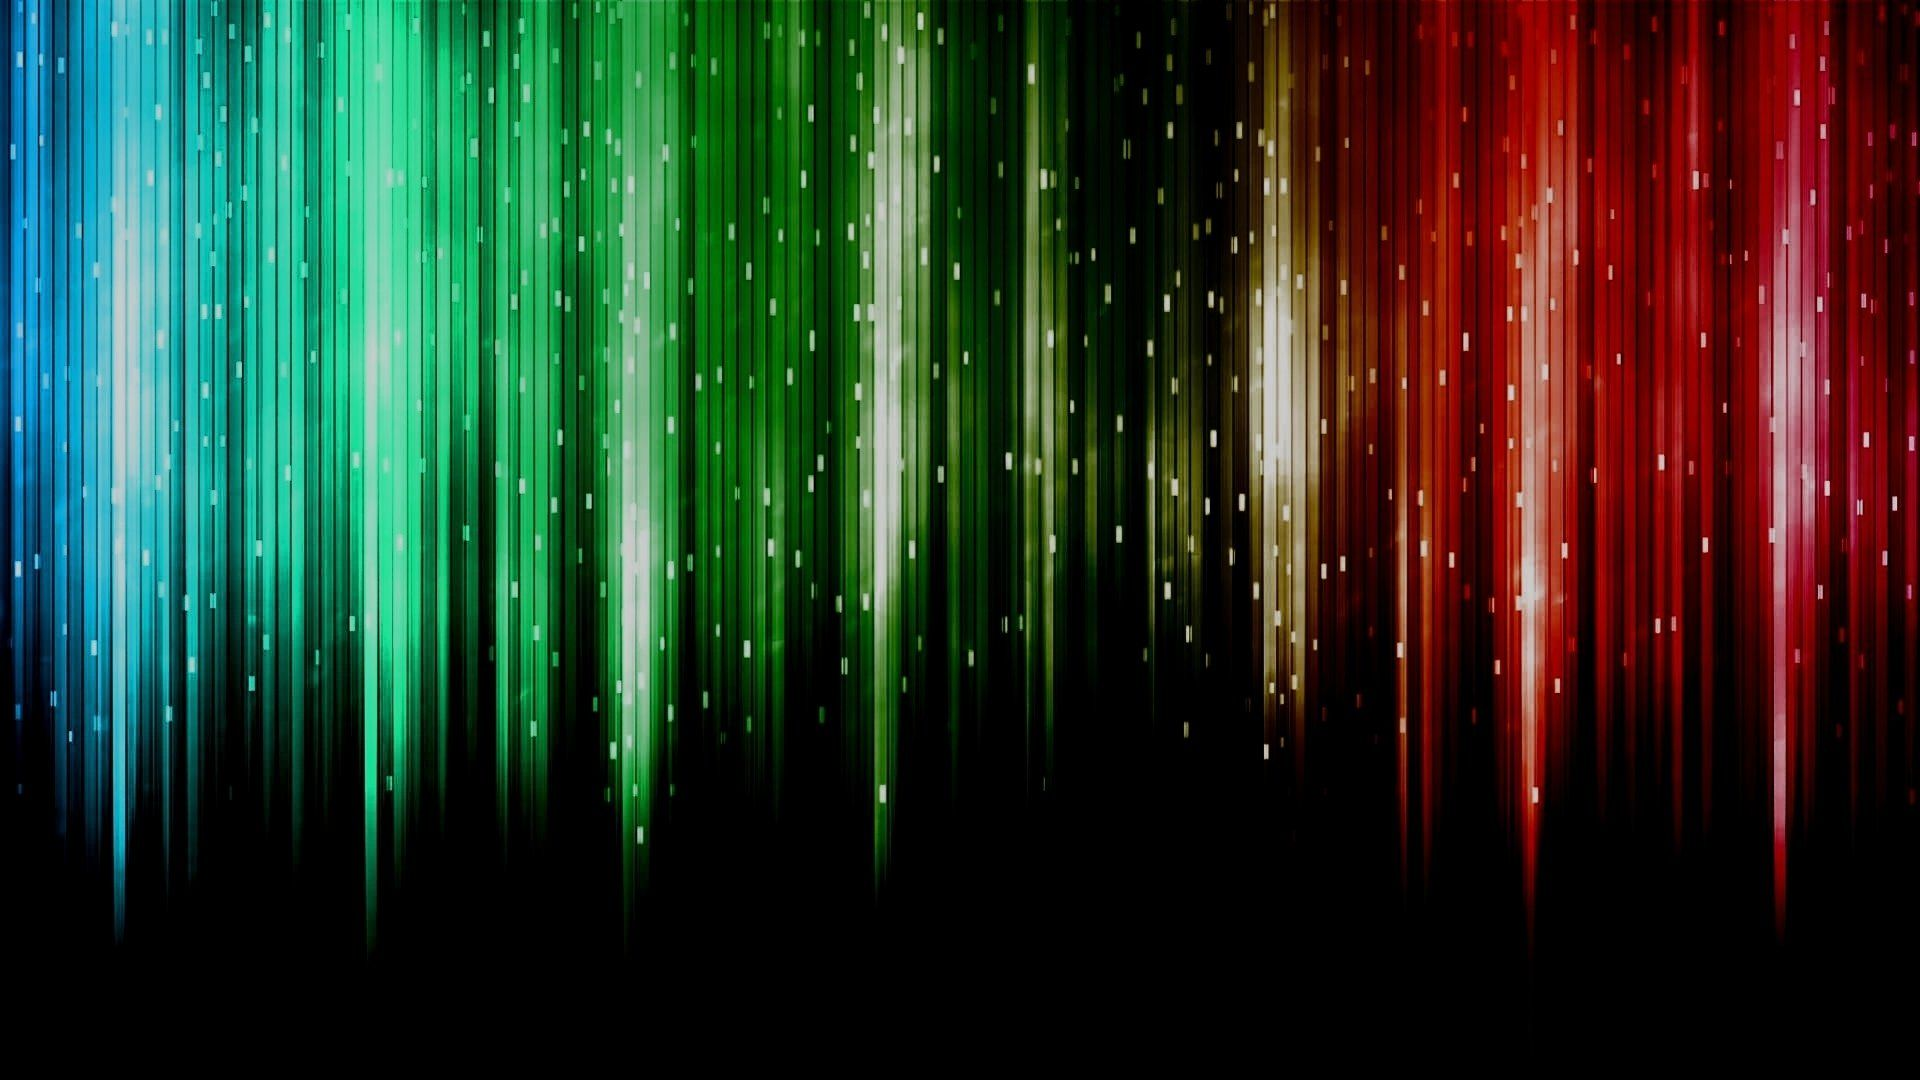 rainbow with black background black rainbow doeidoei xxxx kyenna